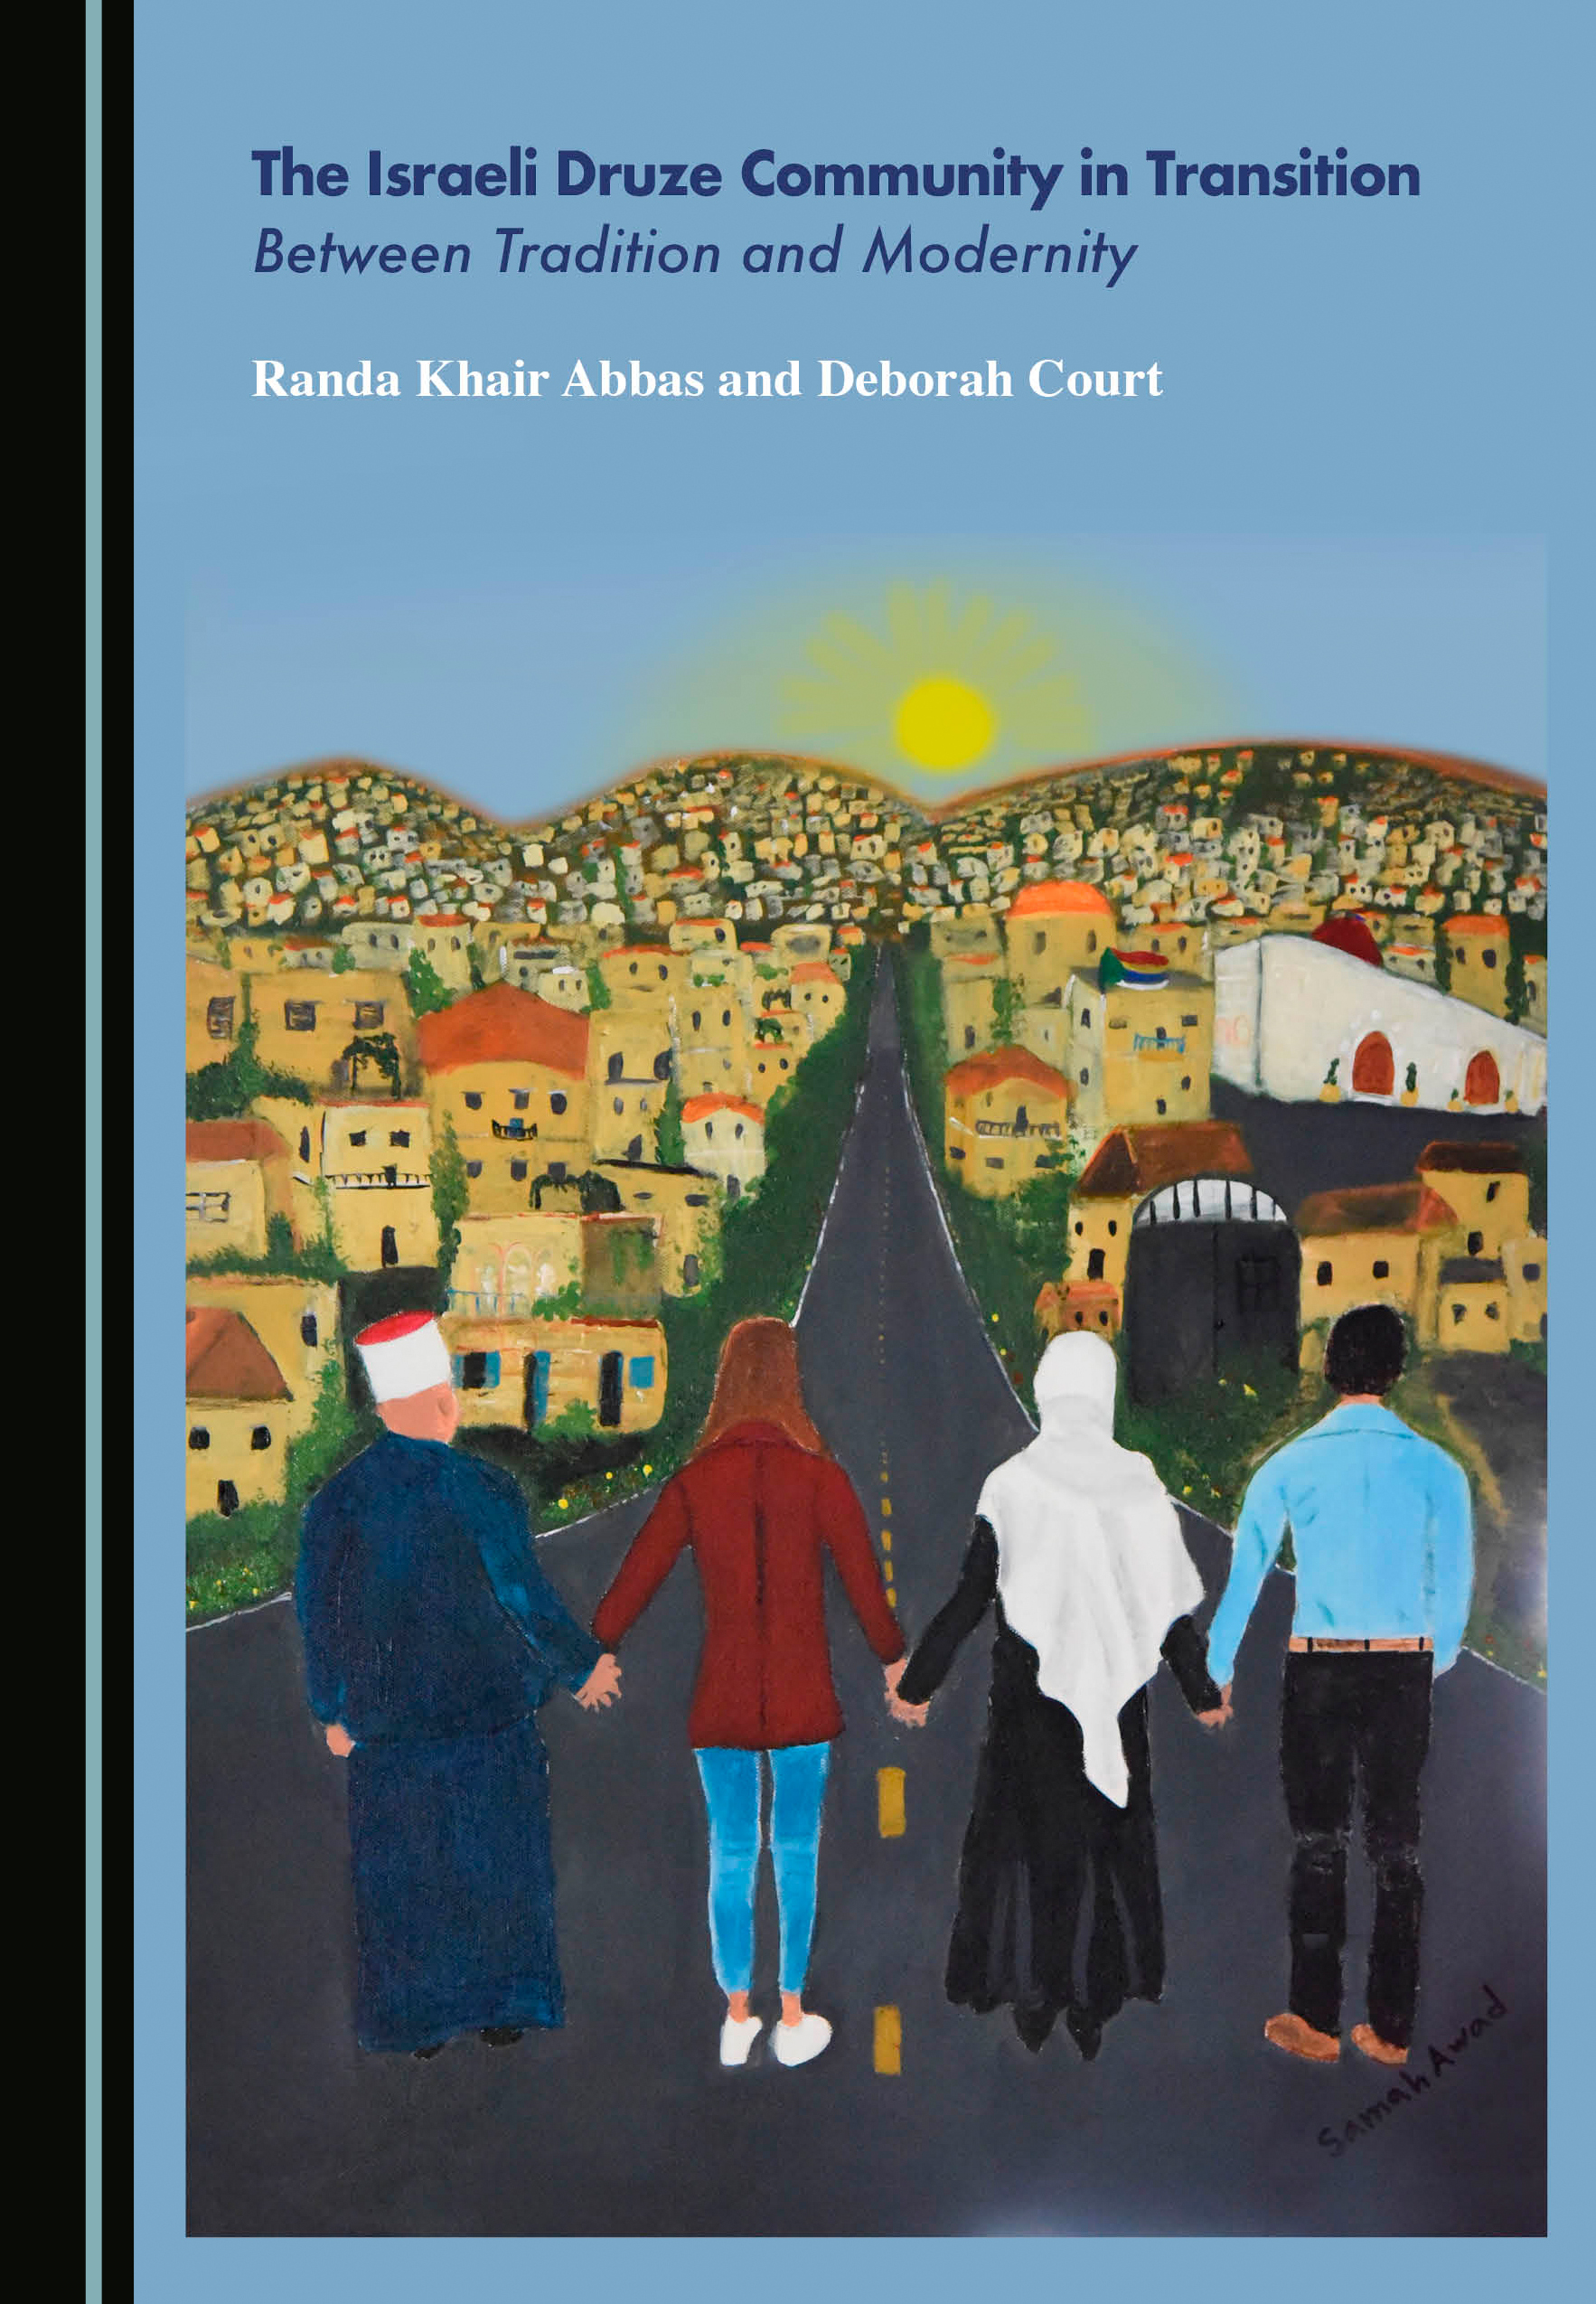 The Israeli Druze Community in Transition: Between Tradition and Modernity